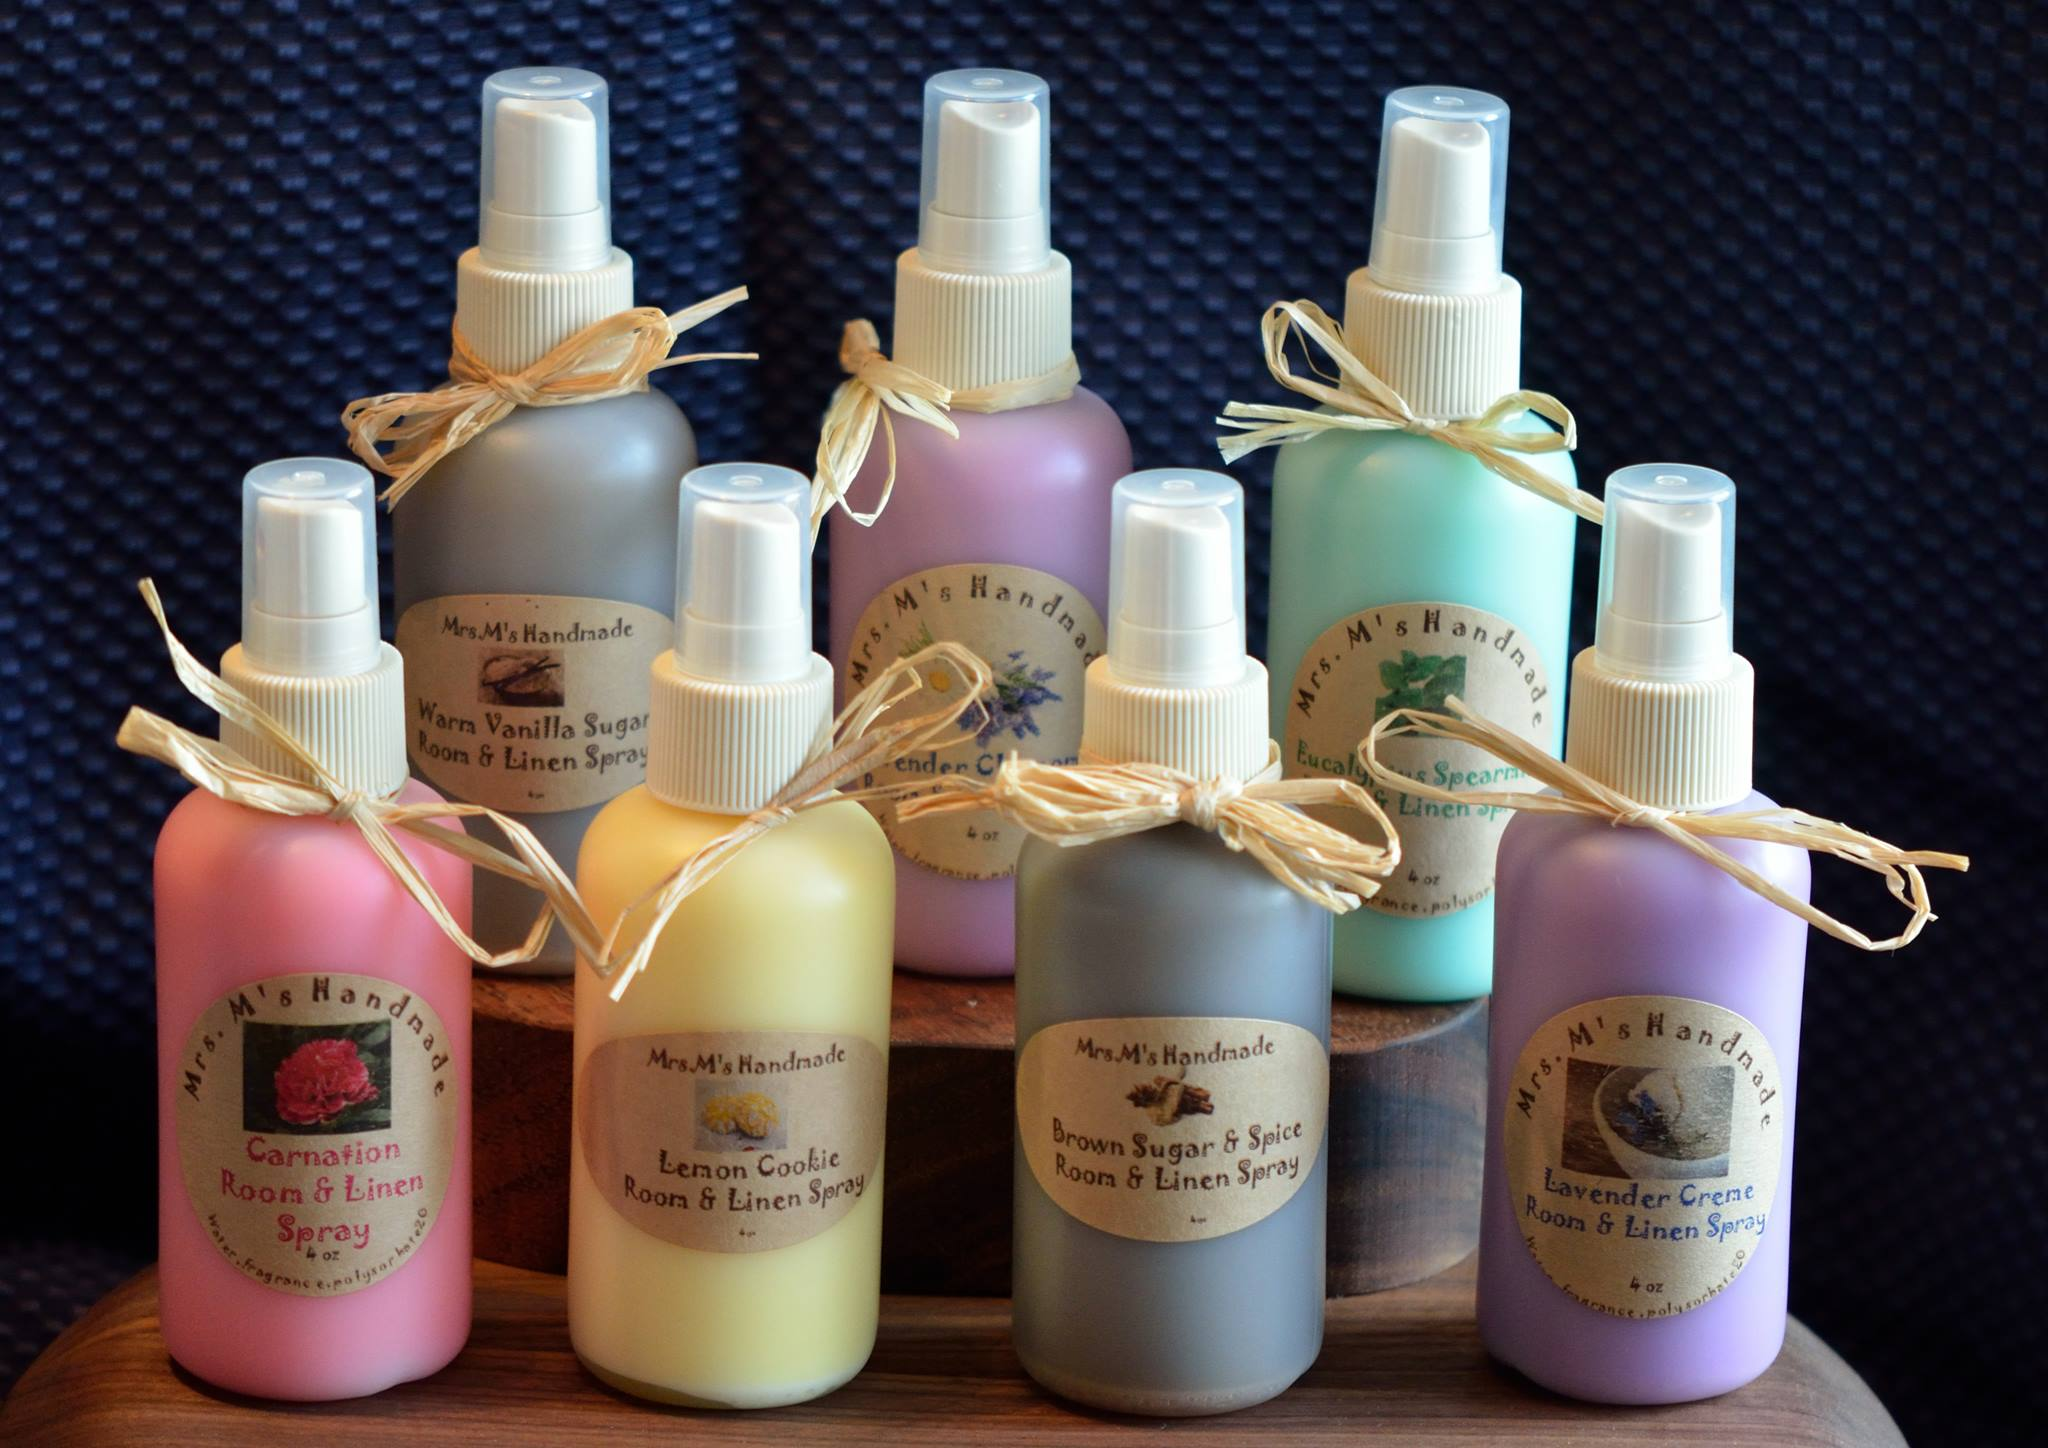 Room & Linen Sprays: Influencing Mood And Stirring Up Memories